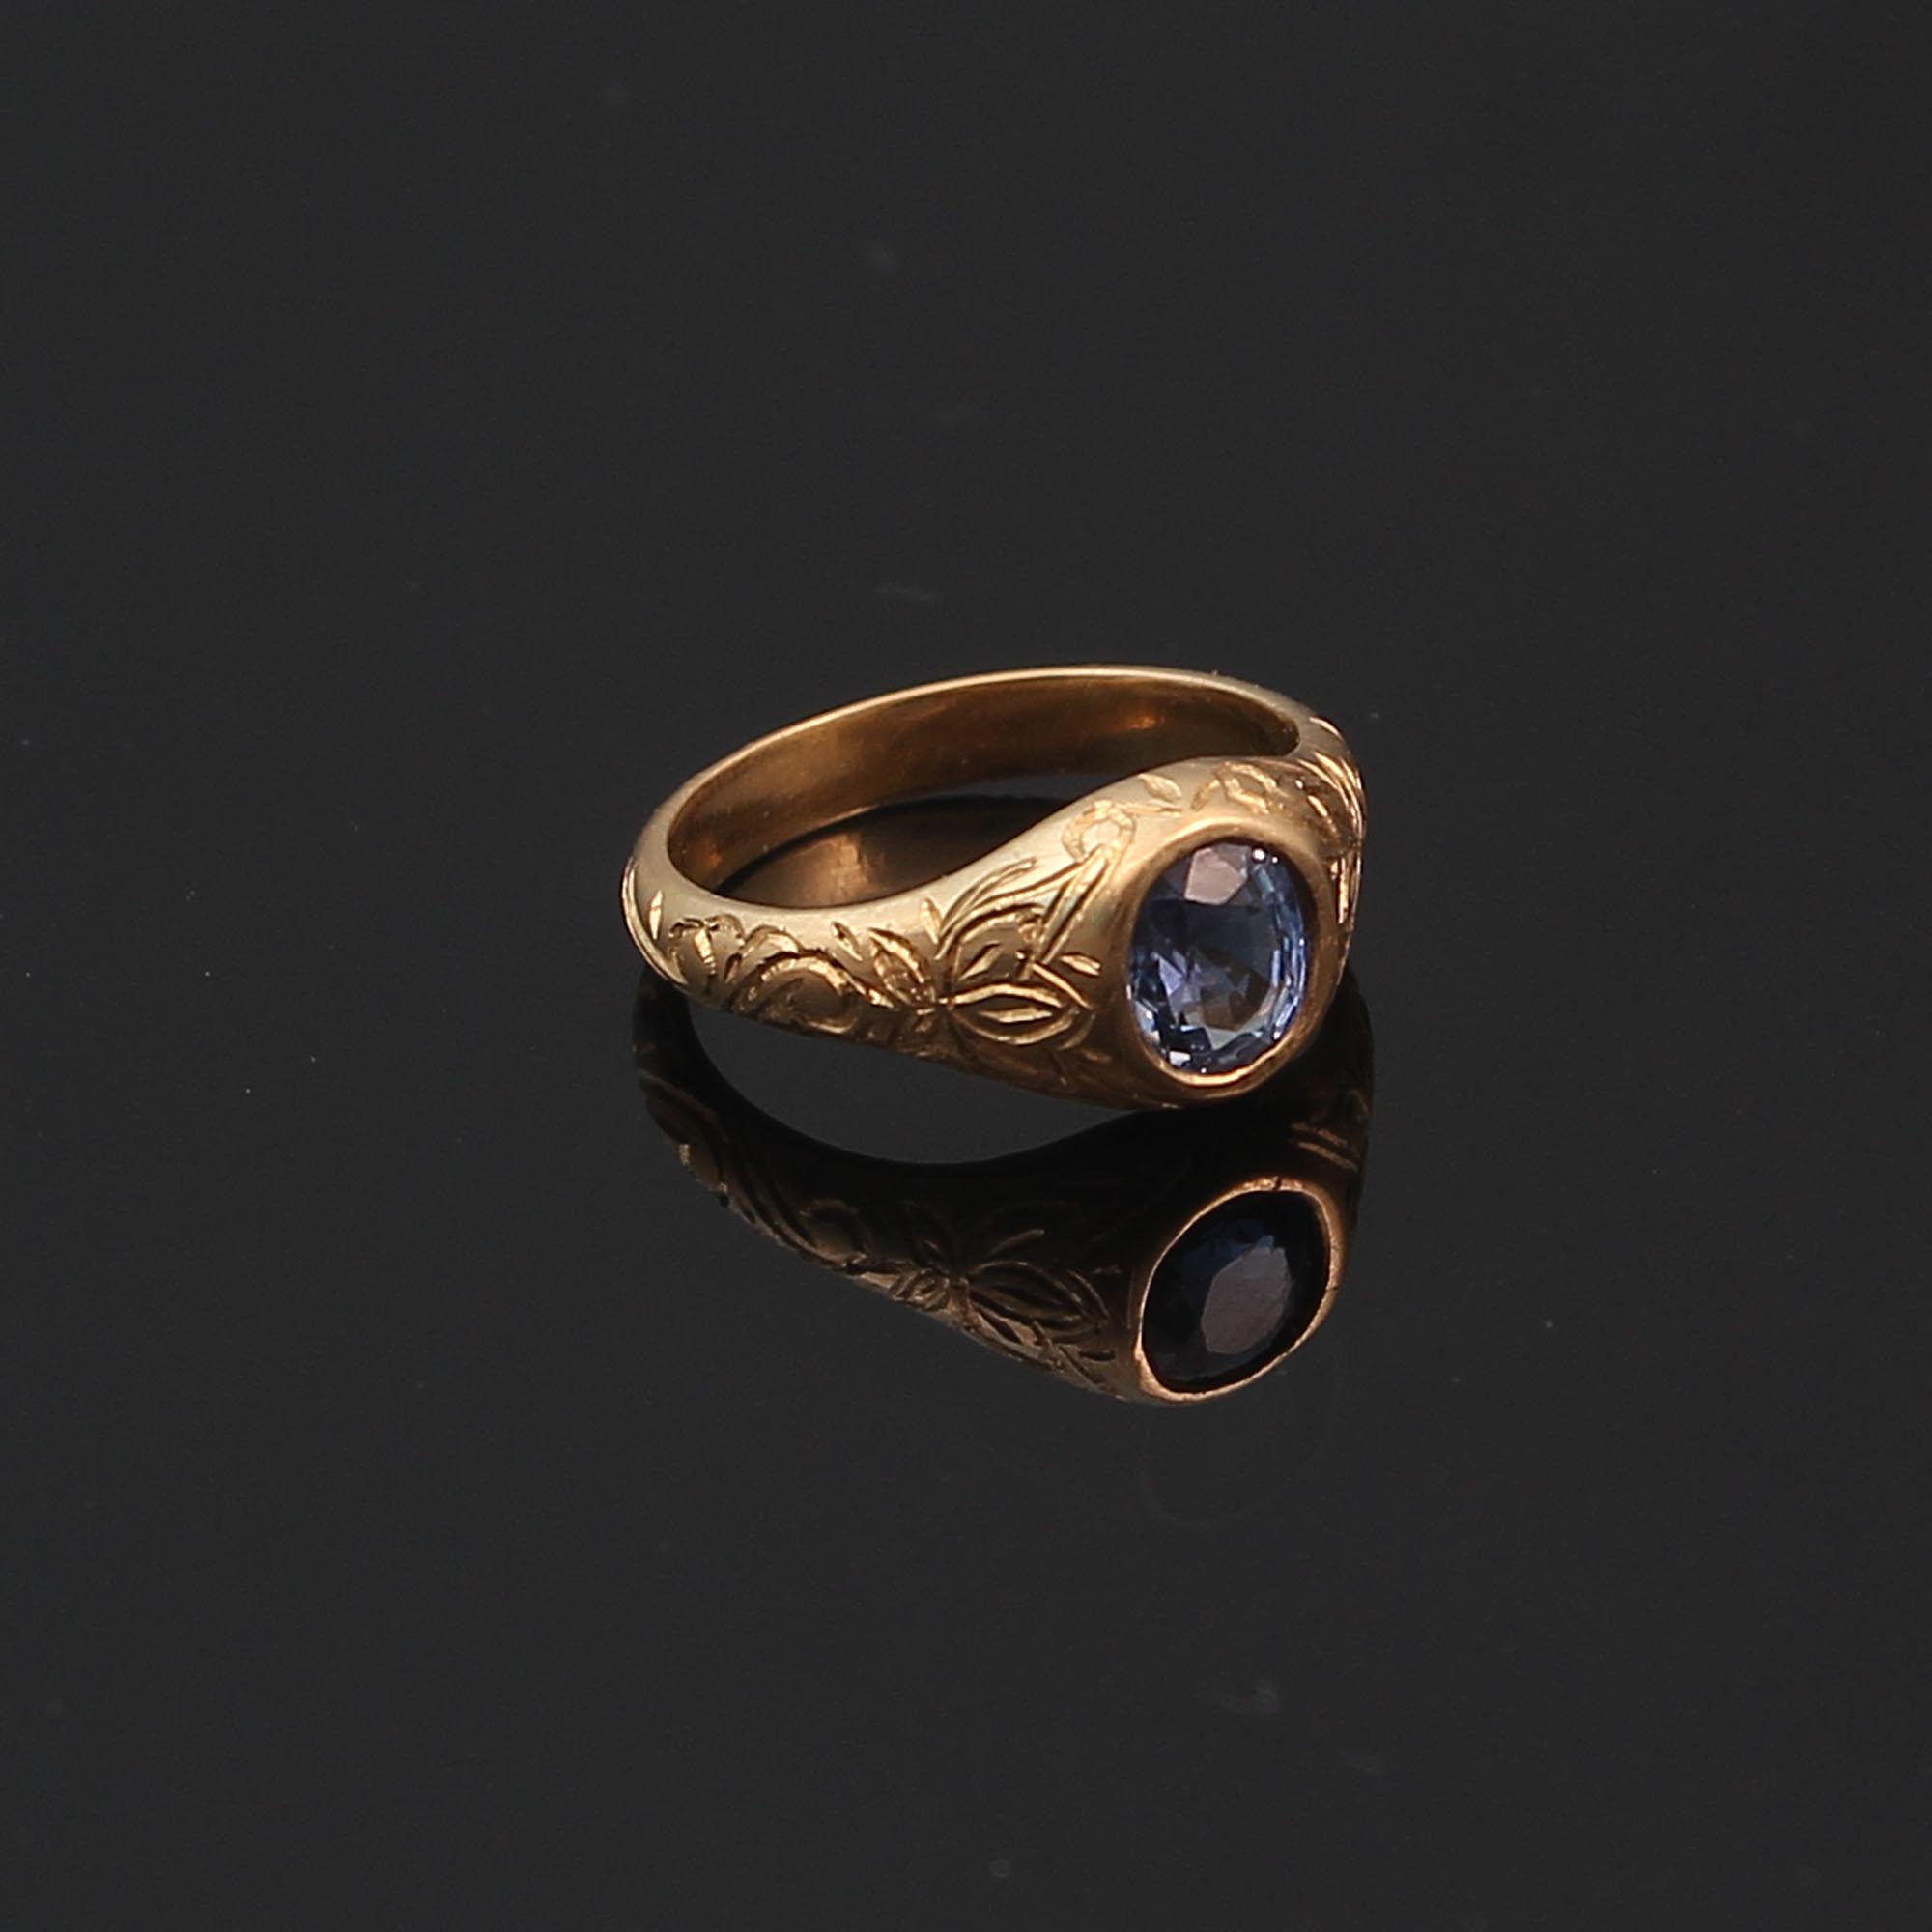 22k gold natural blue sapphire ring with hand engraving by Alexander wilson alexander gems and jewels gray reid gallery 3.JPG